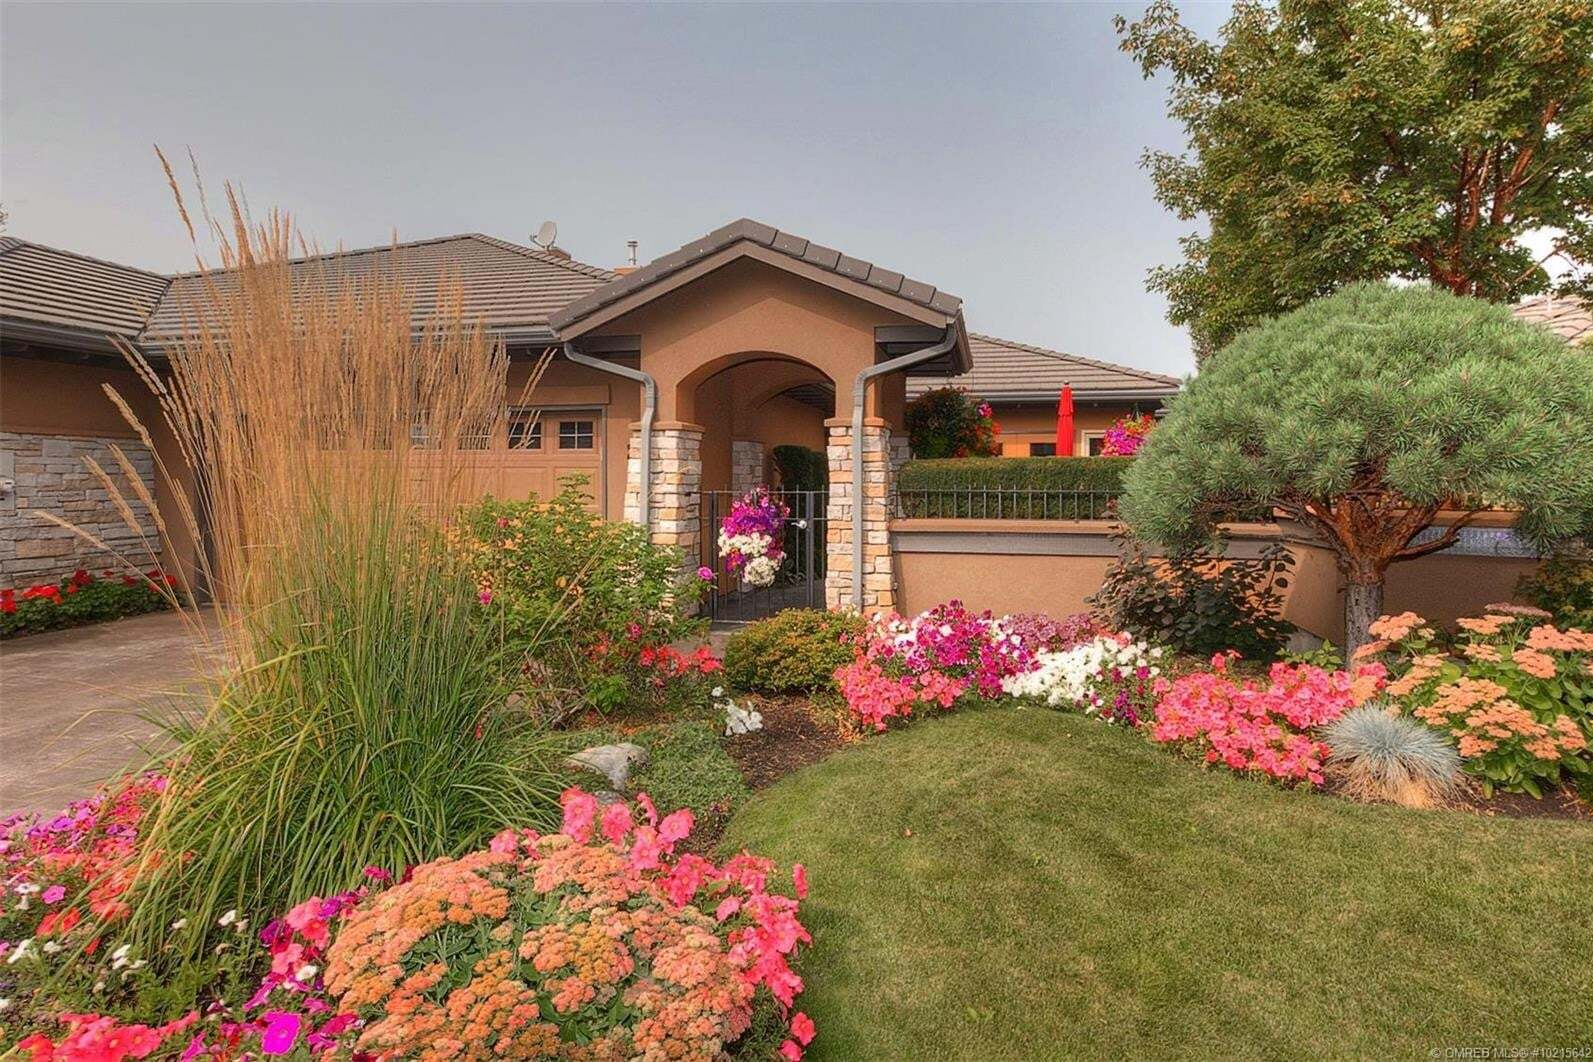 Townhouse for sale at 4100 Gallaghers Parkland Dr Kelowna British Columbia - MLS: 10215642